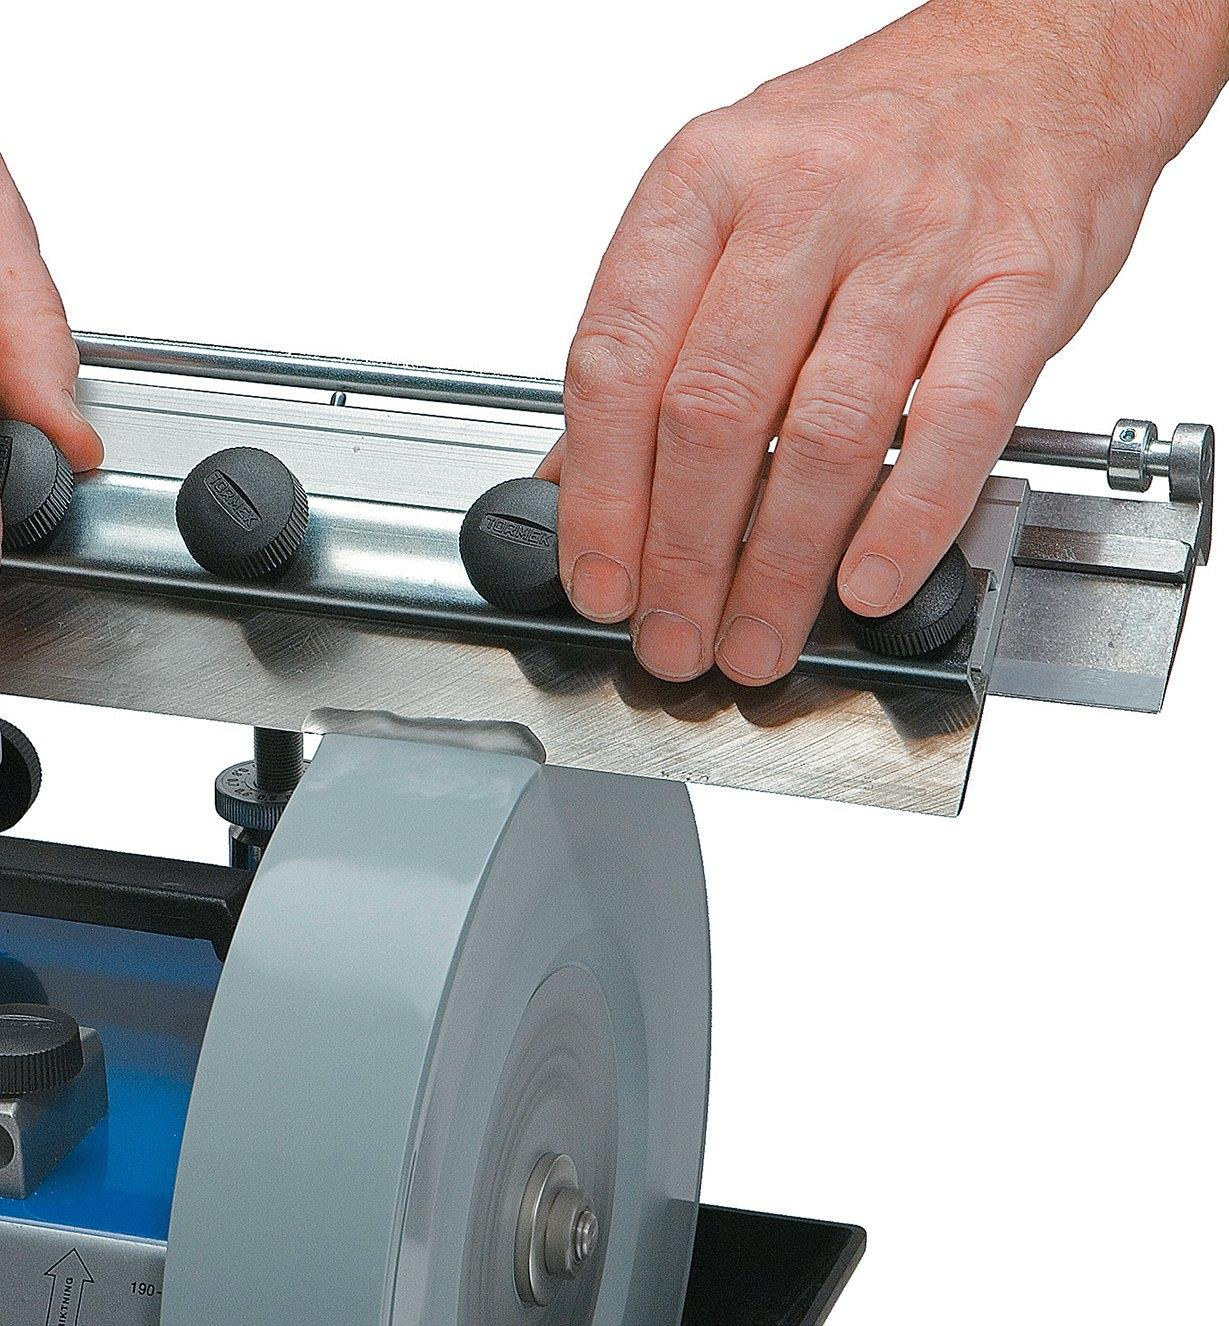 Sharpening a planer blade using the Tormek Planer Blade Attachment